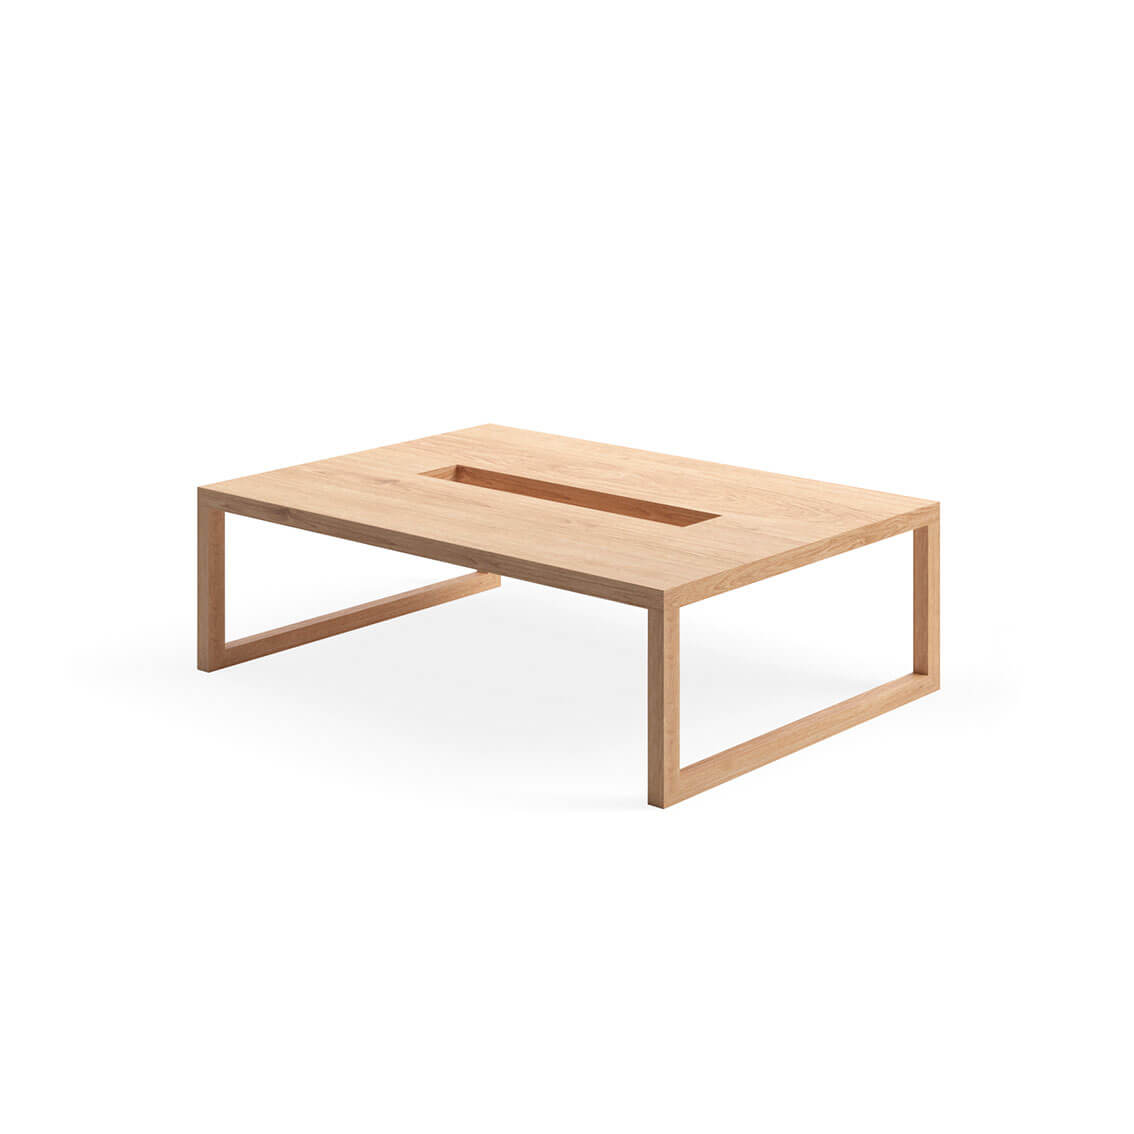 Maria Pot Coffee Table